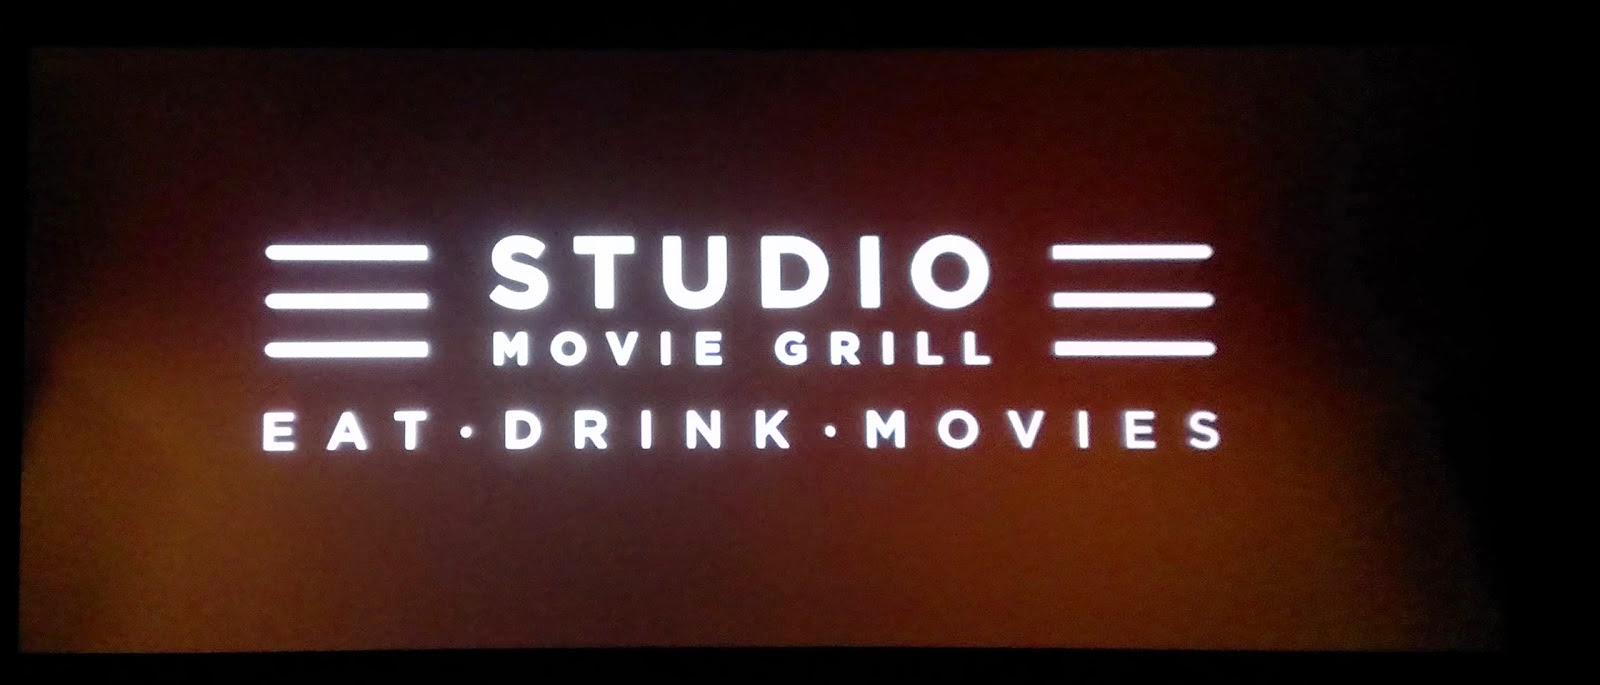 http://utddiscountfun.blogspot.com/2013/11/studio-movie-grills-savings.html